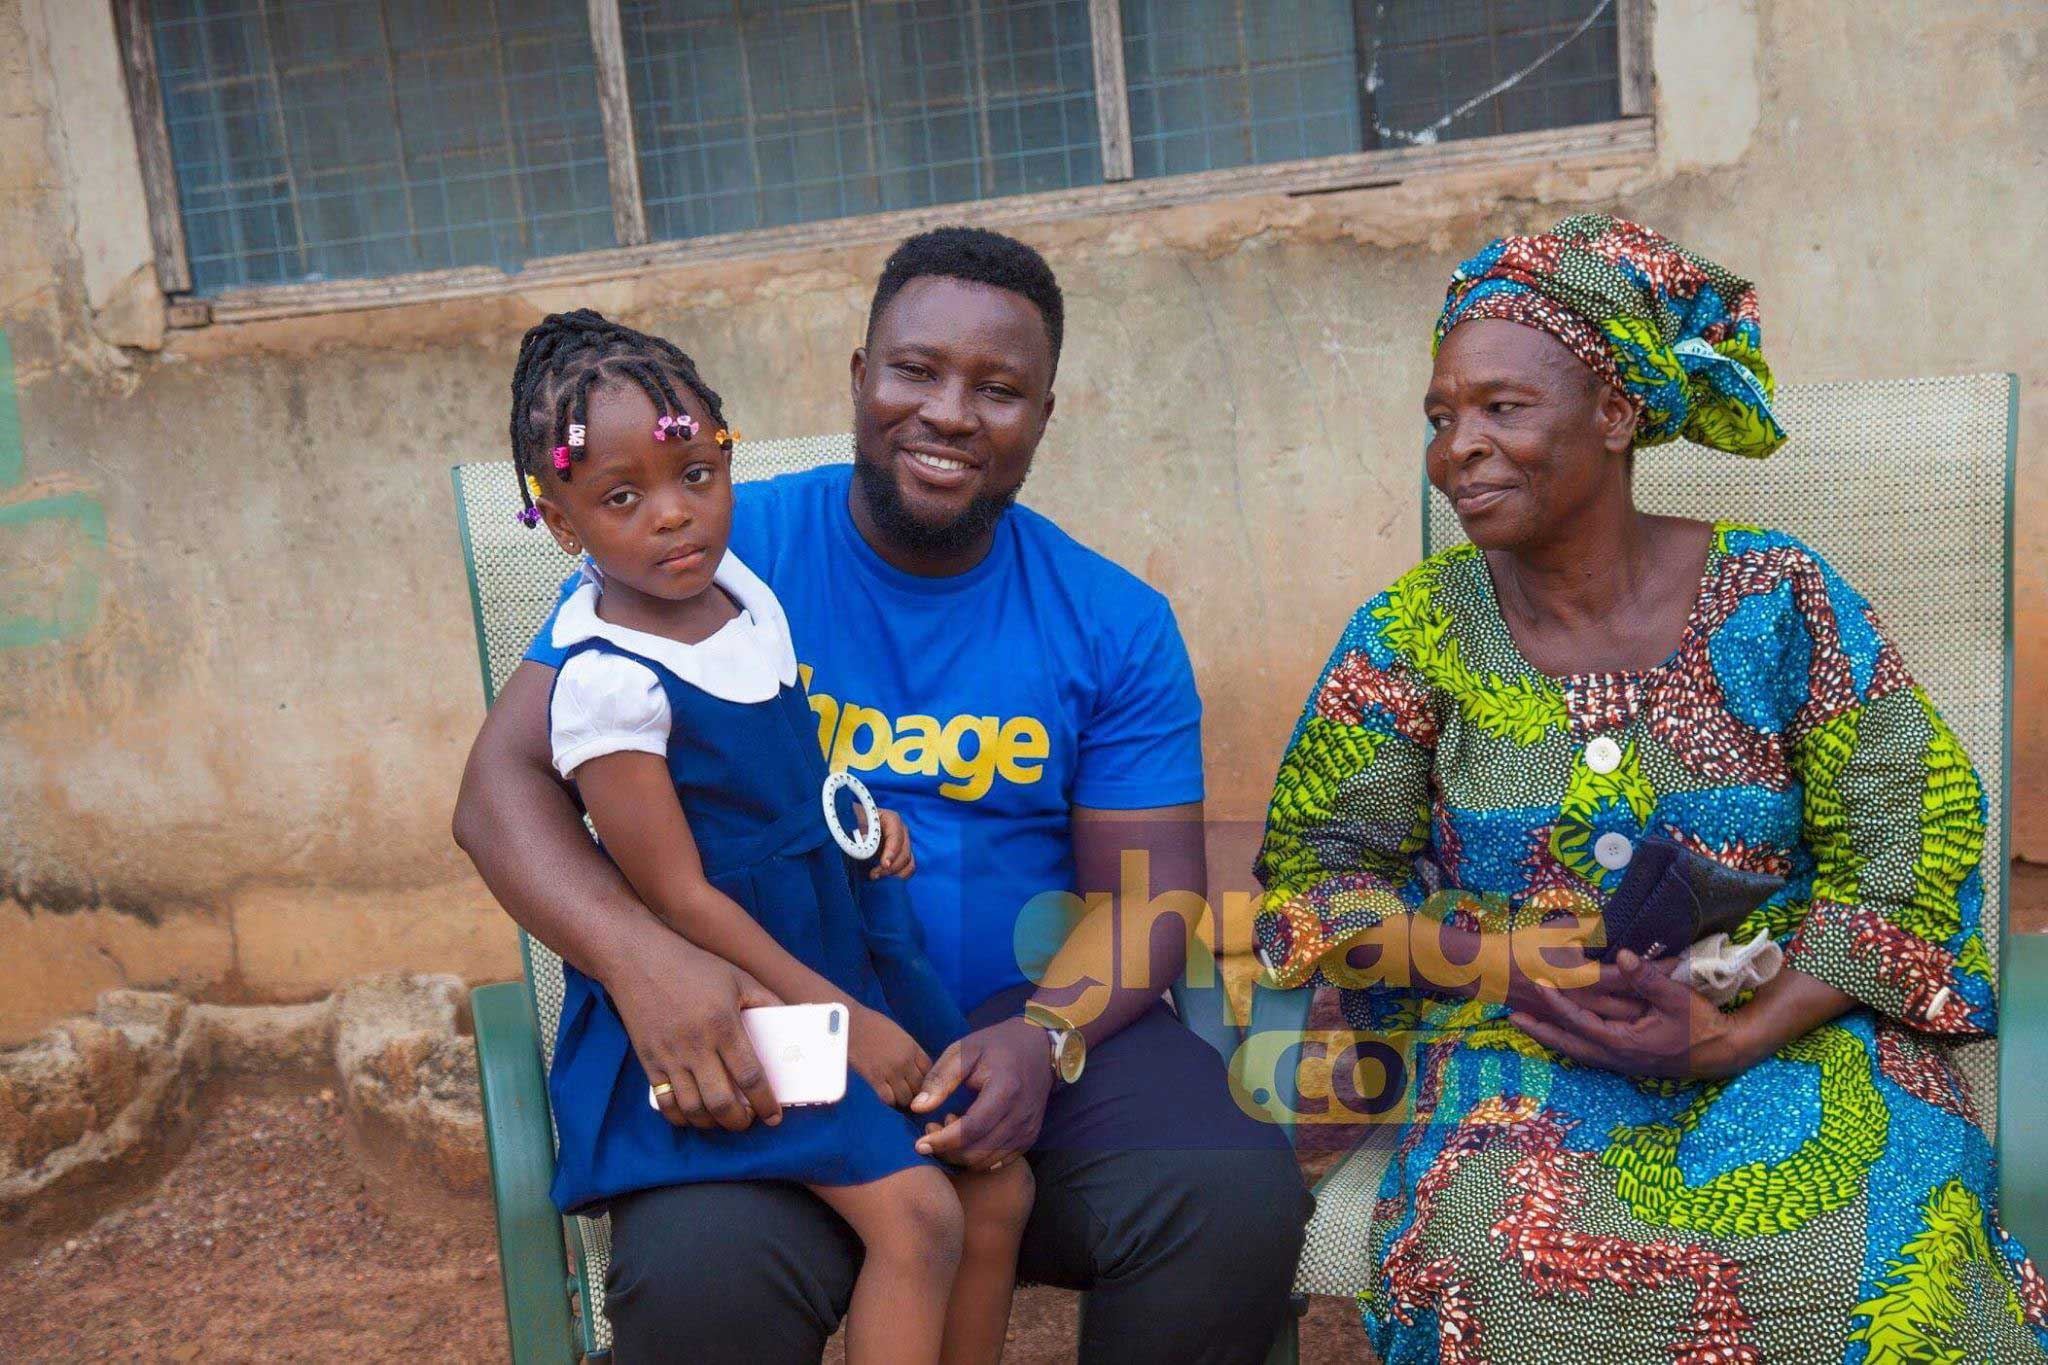 Kwaadee family Rashad - Okomfo Kwaade has relapsed-Oguns Kele has sacked him from his house